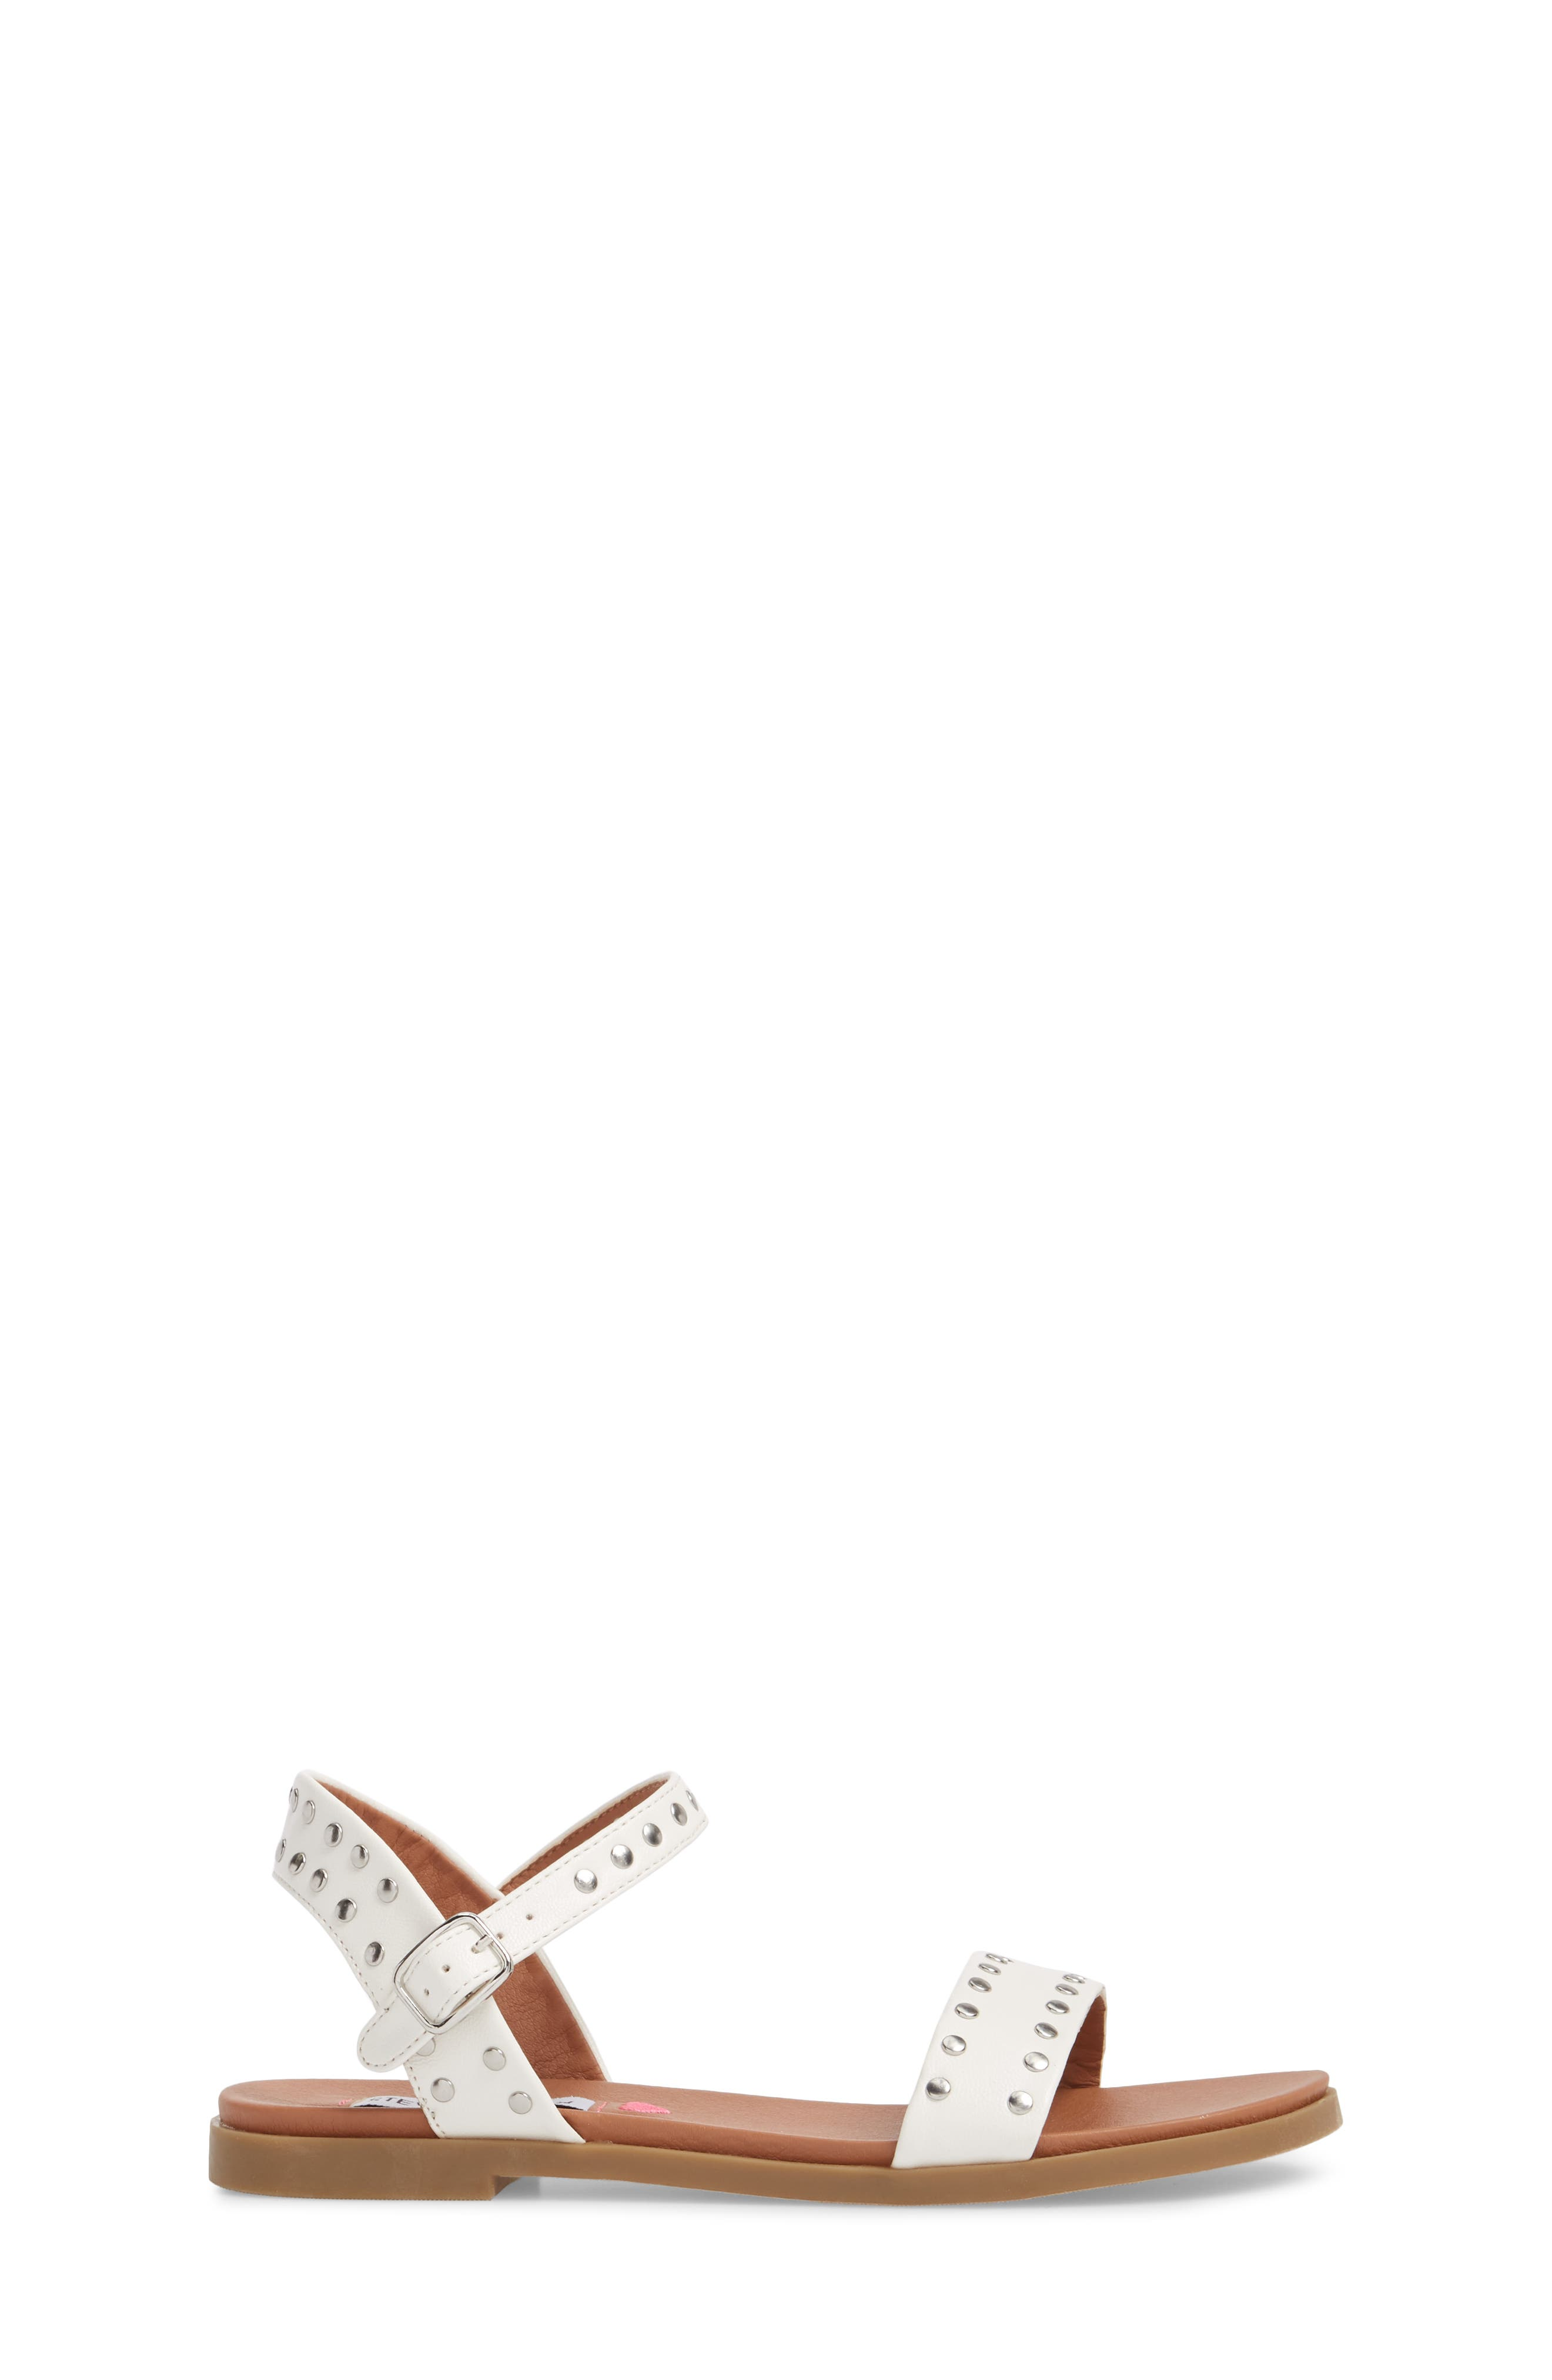 JDONDI Studded Sandal,                             Alternate thumbnail 3, color,                             WHITE